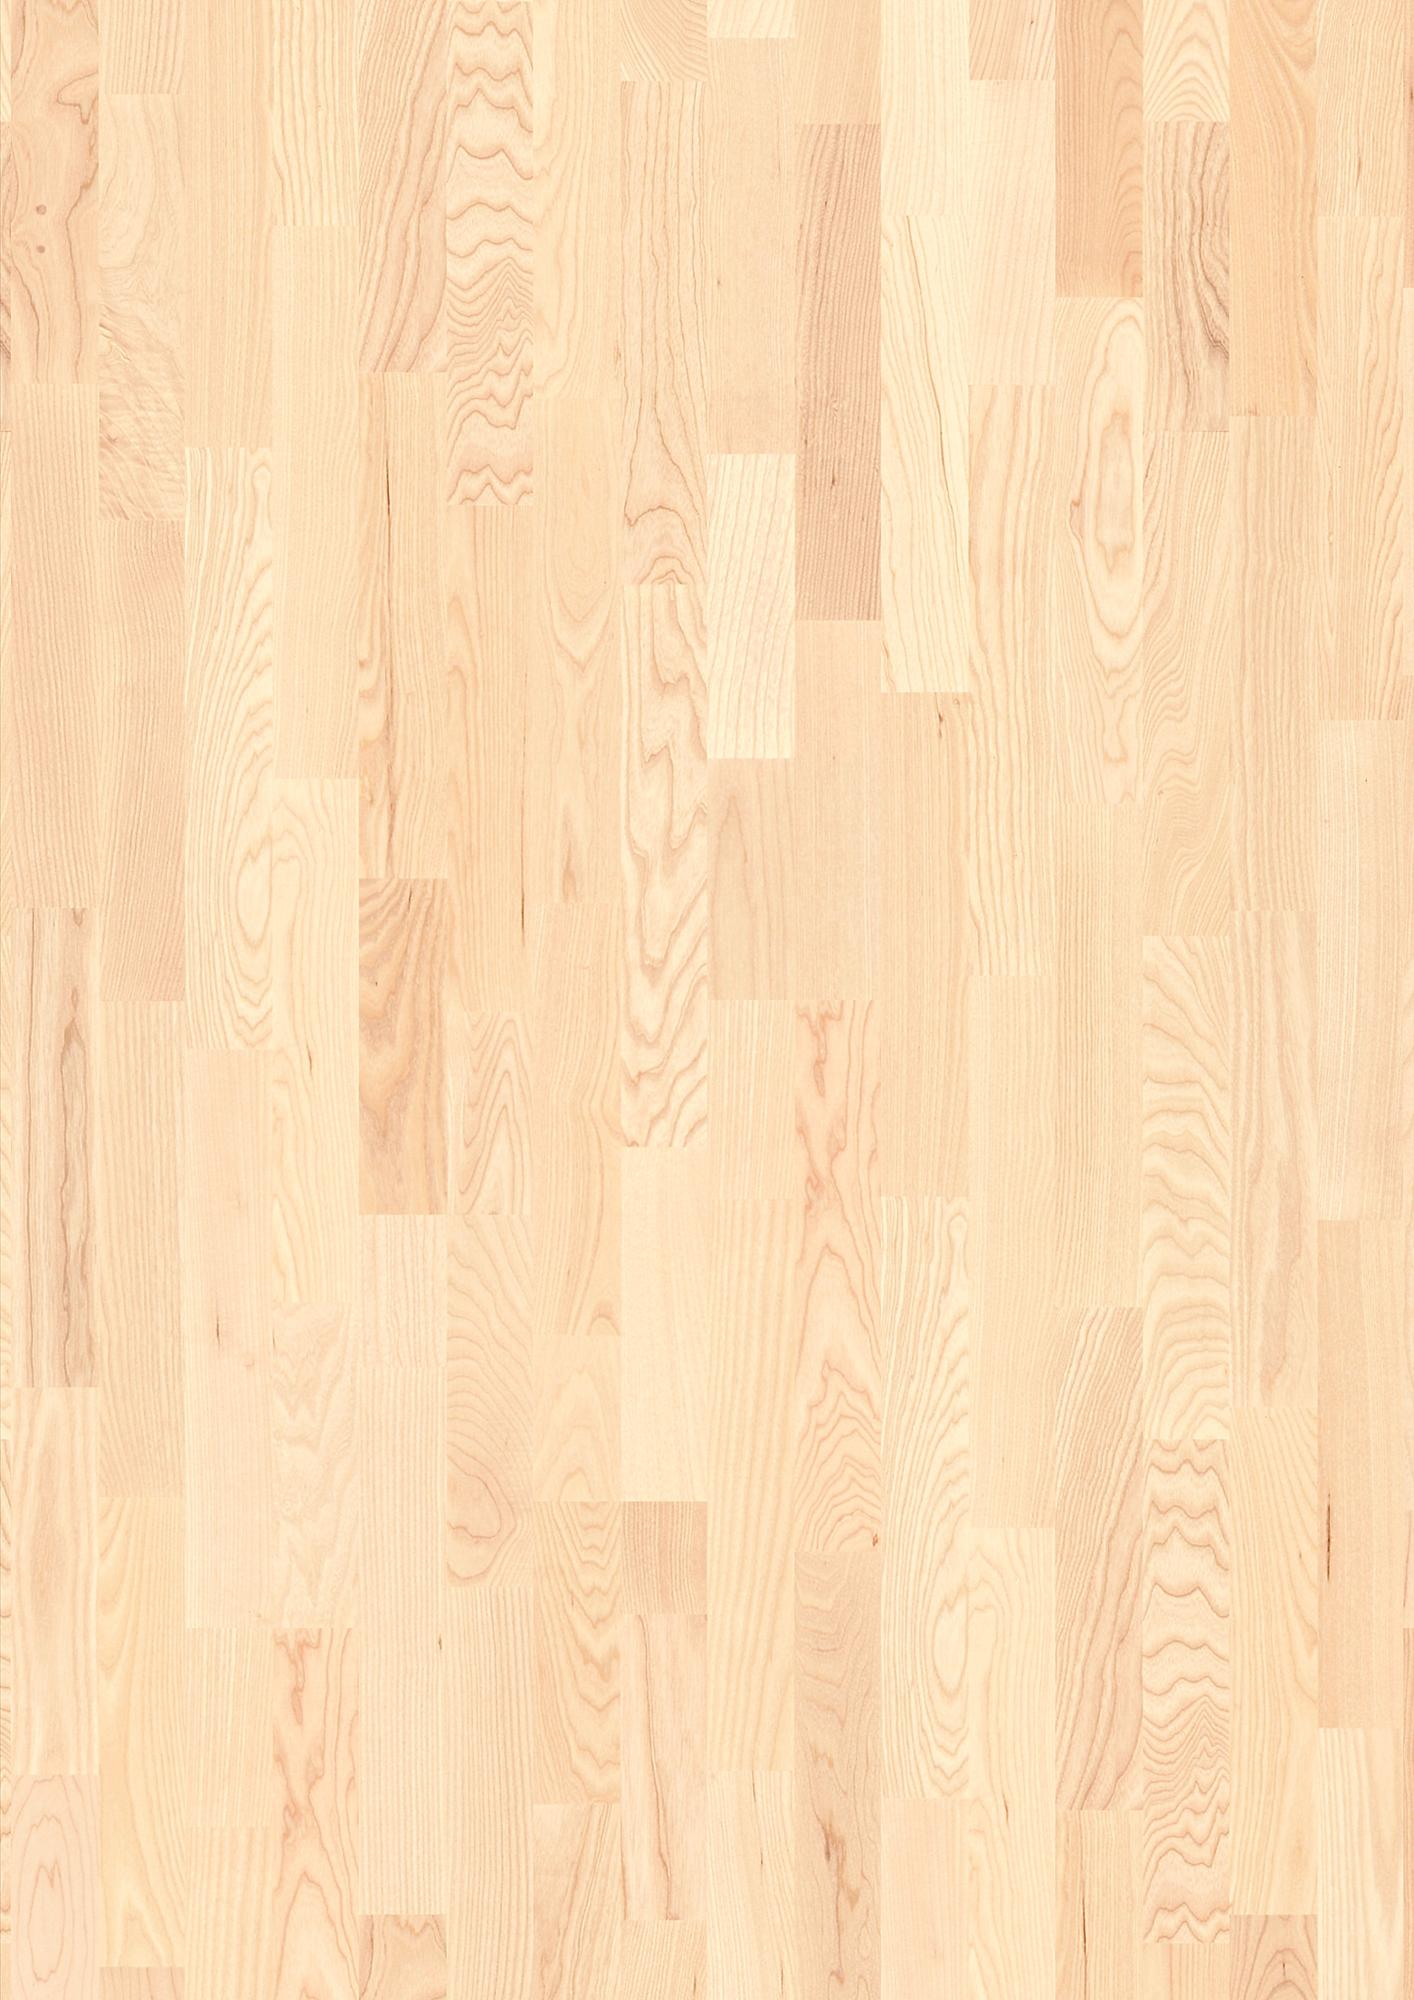 Ash Andante white, Live Matt lacquer white, Unbrushed, Square edged, Longstrip 3-Strip, 14x215x2200mm